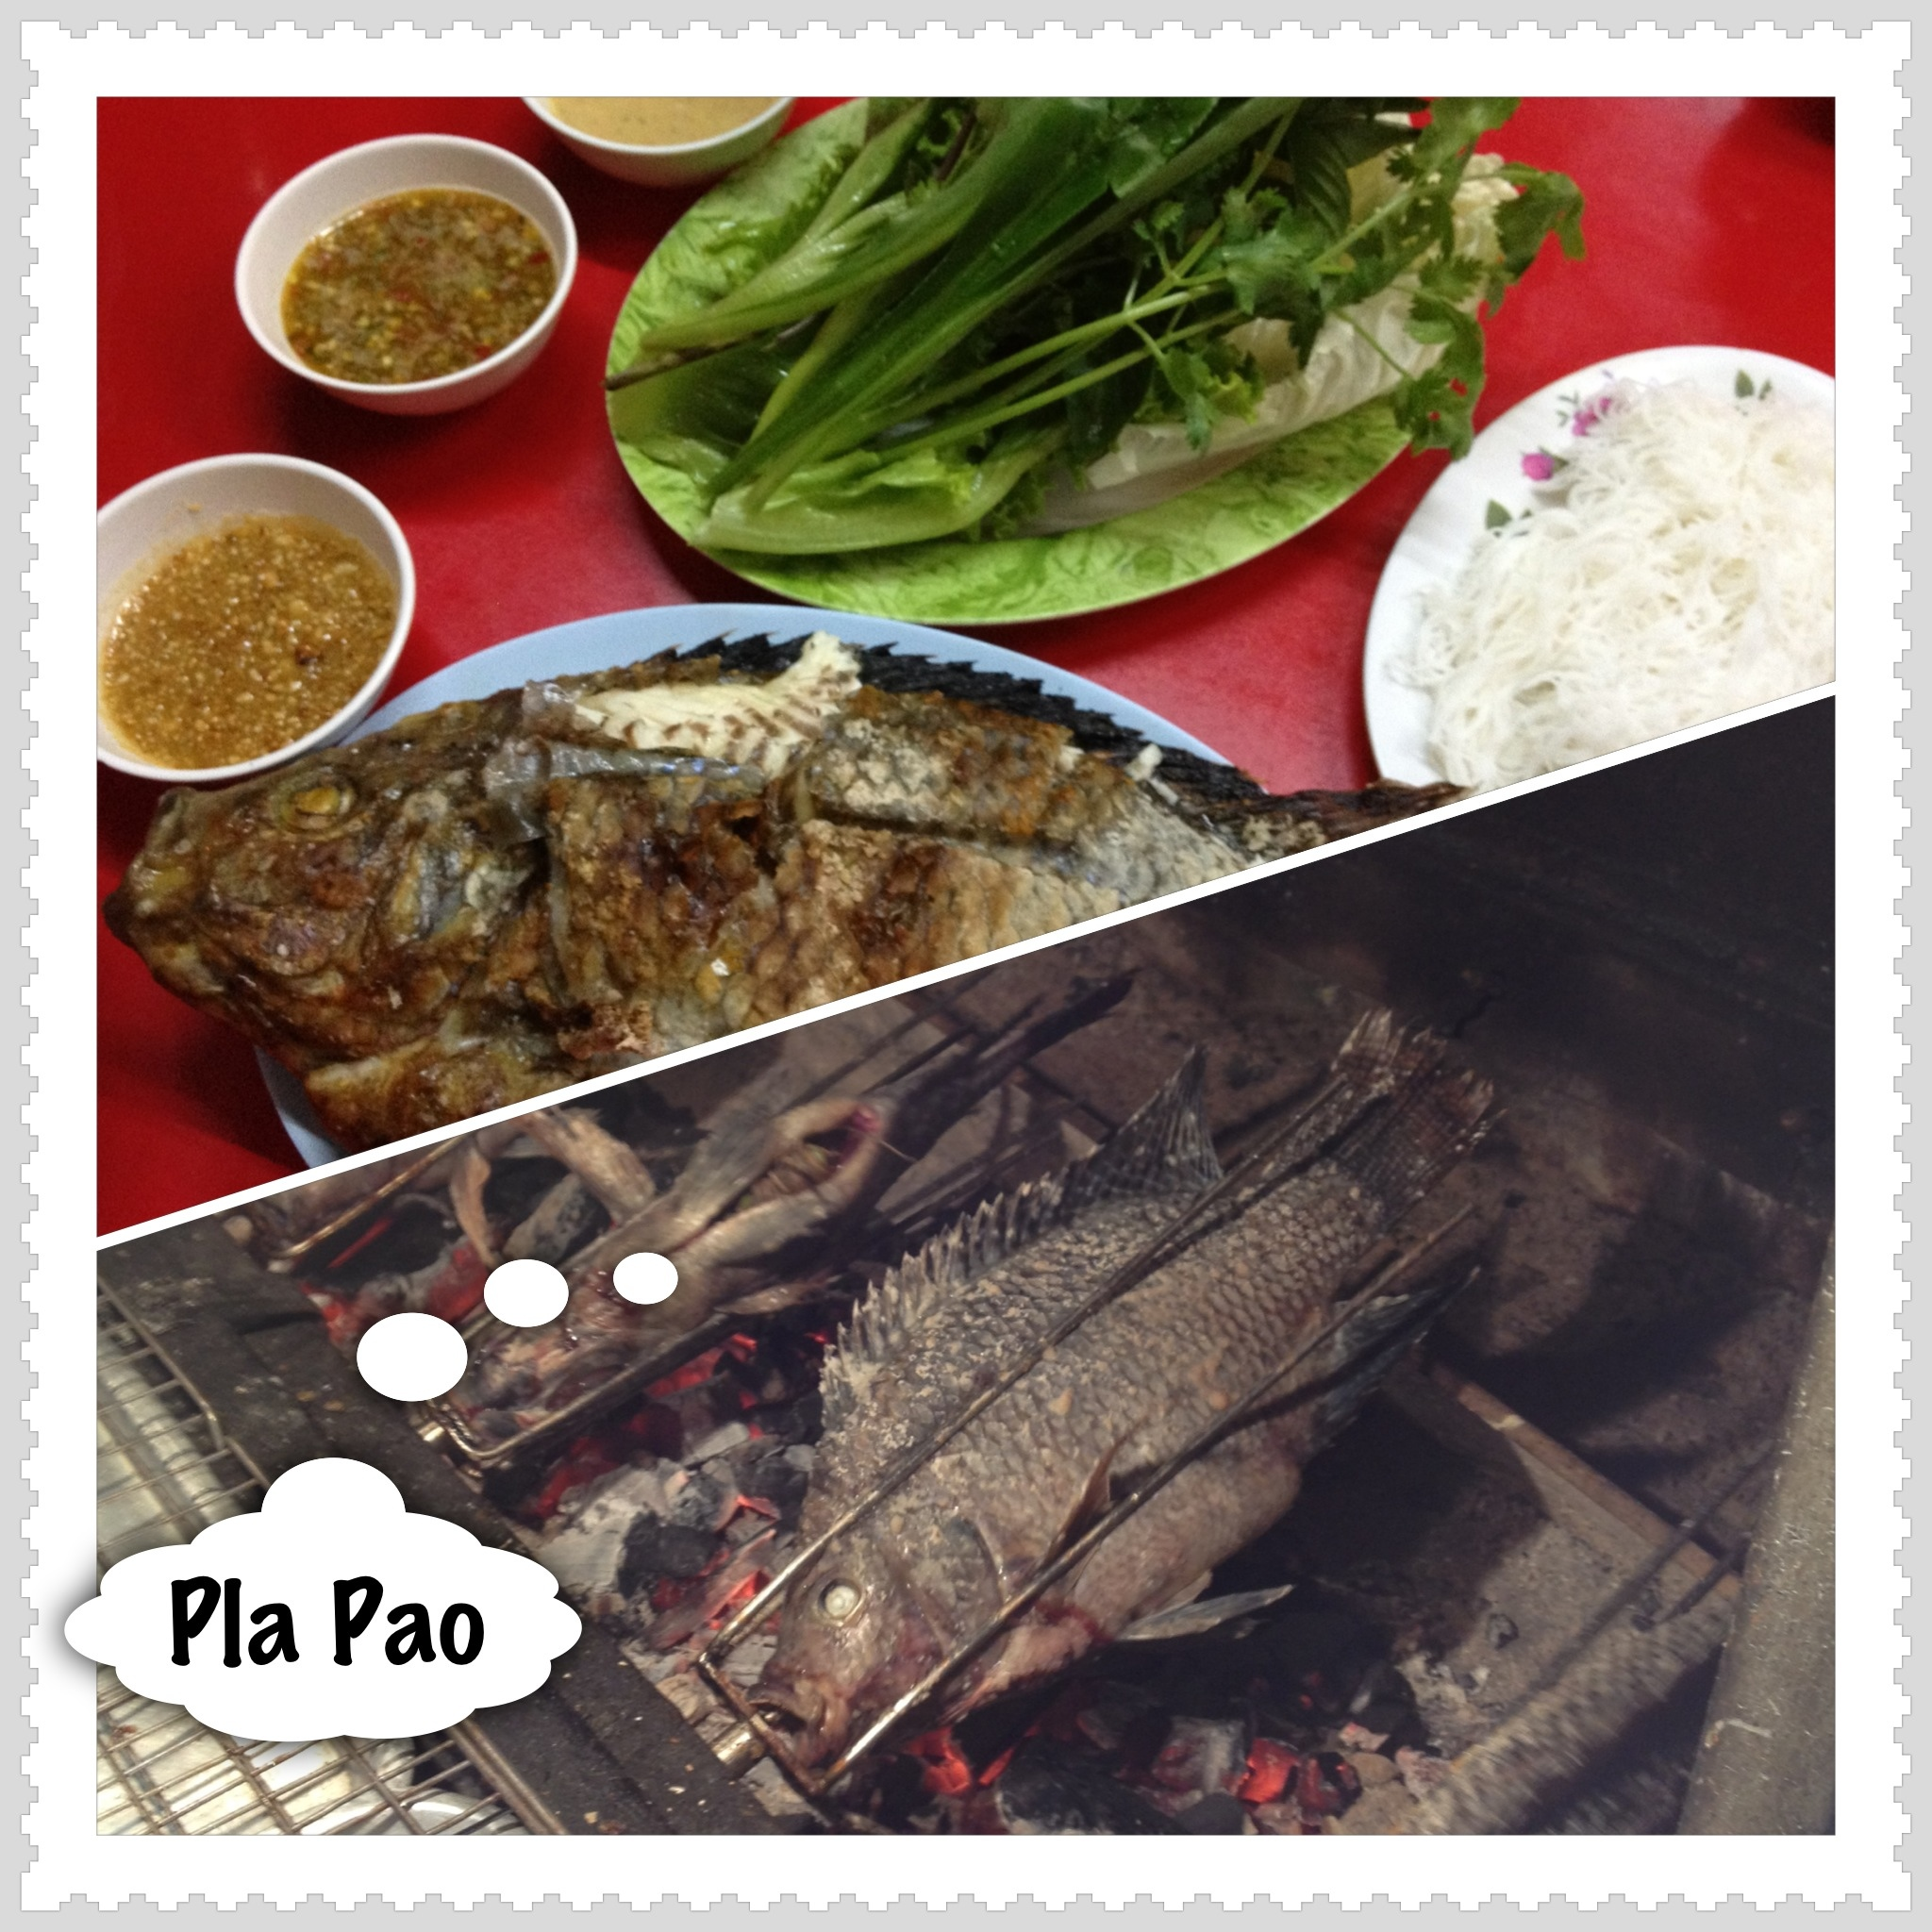 Pla Pao in Thailand